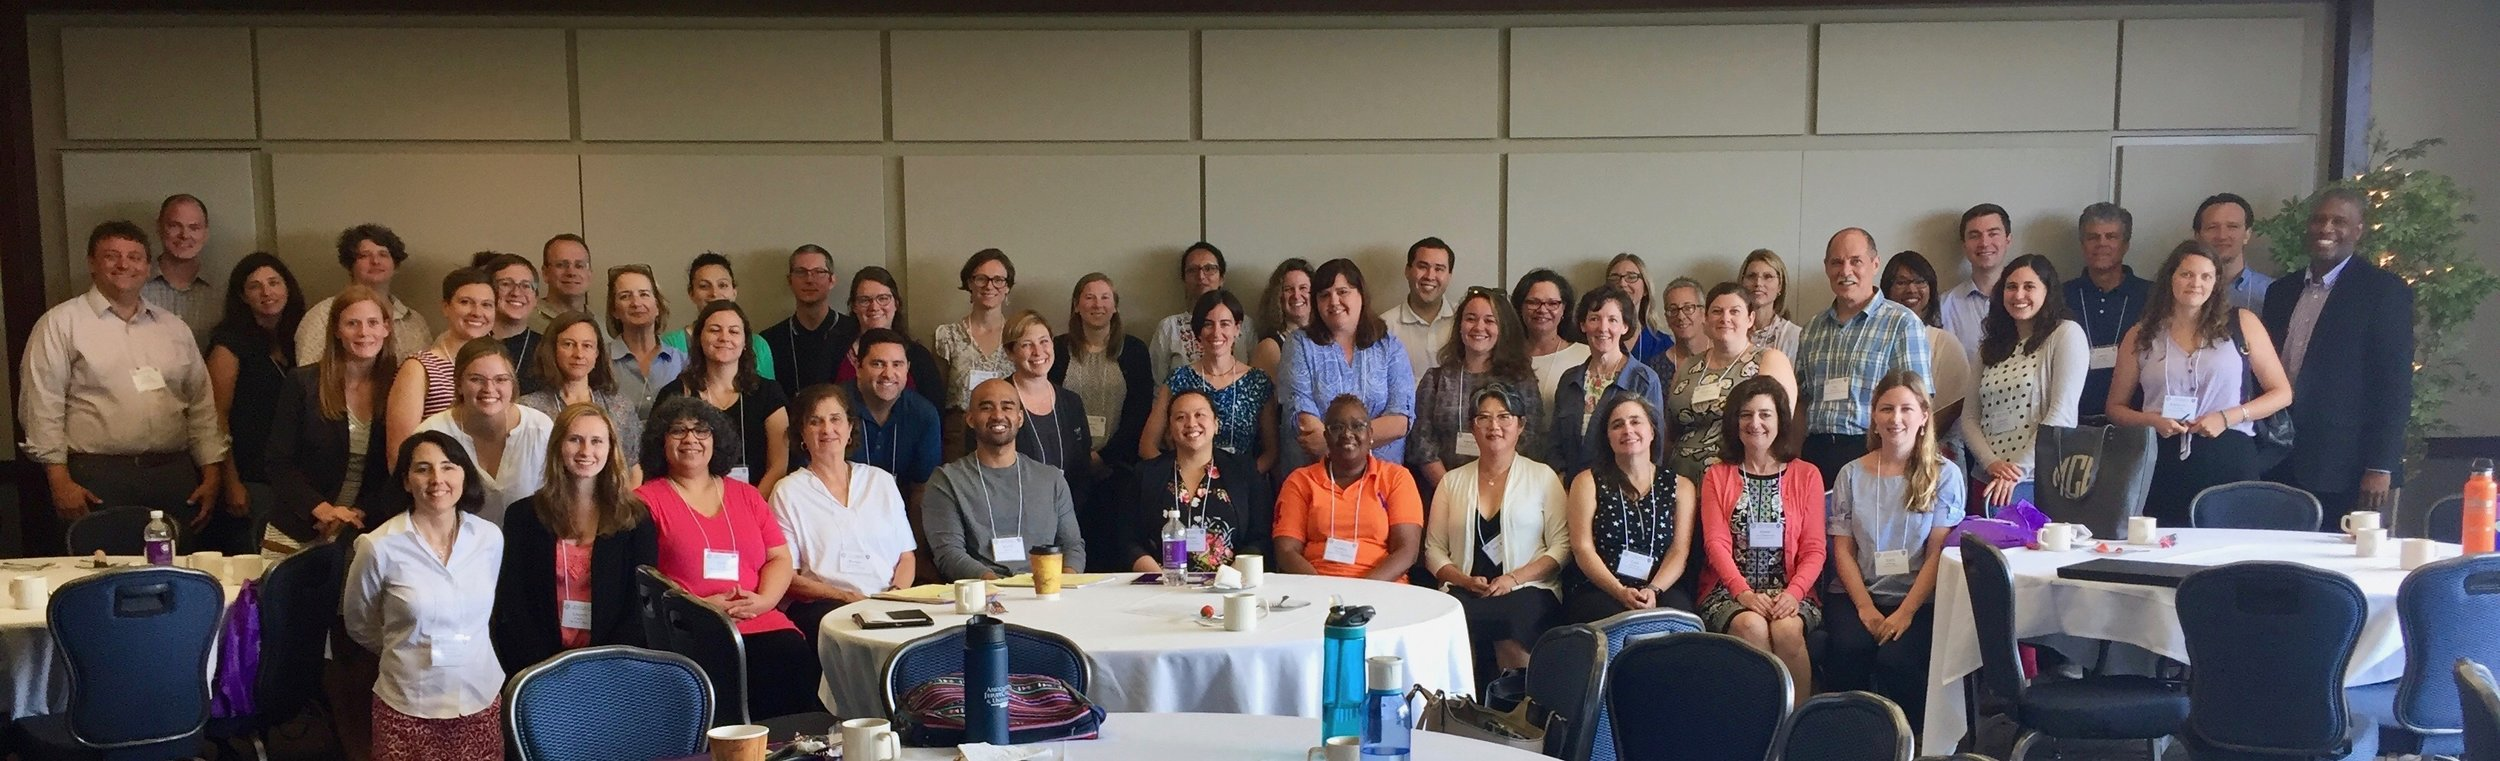 A record number of participants (54) gathered at the College of the Holy Cross in June 2019 for the biannual meeting of the AJCU Service Learning Professionals (photo courtesy of Holy Cross)